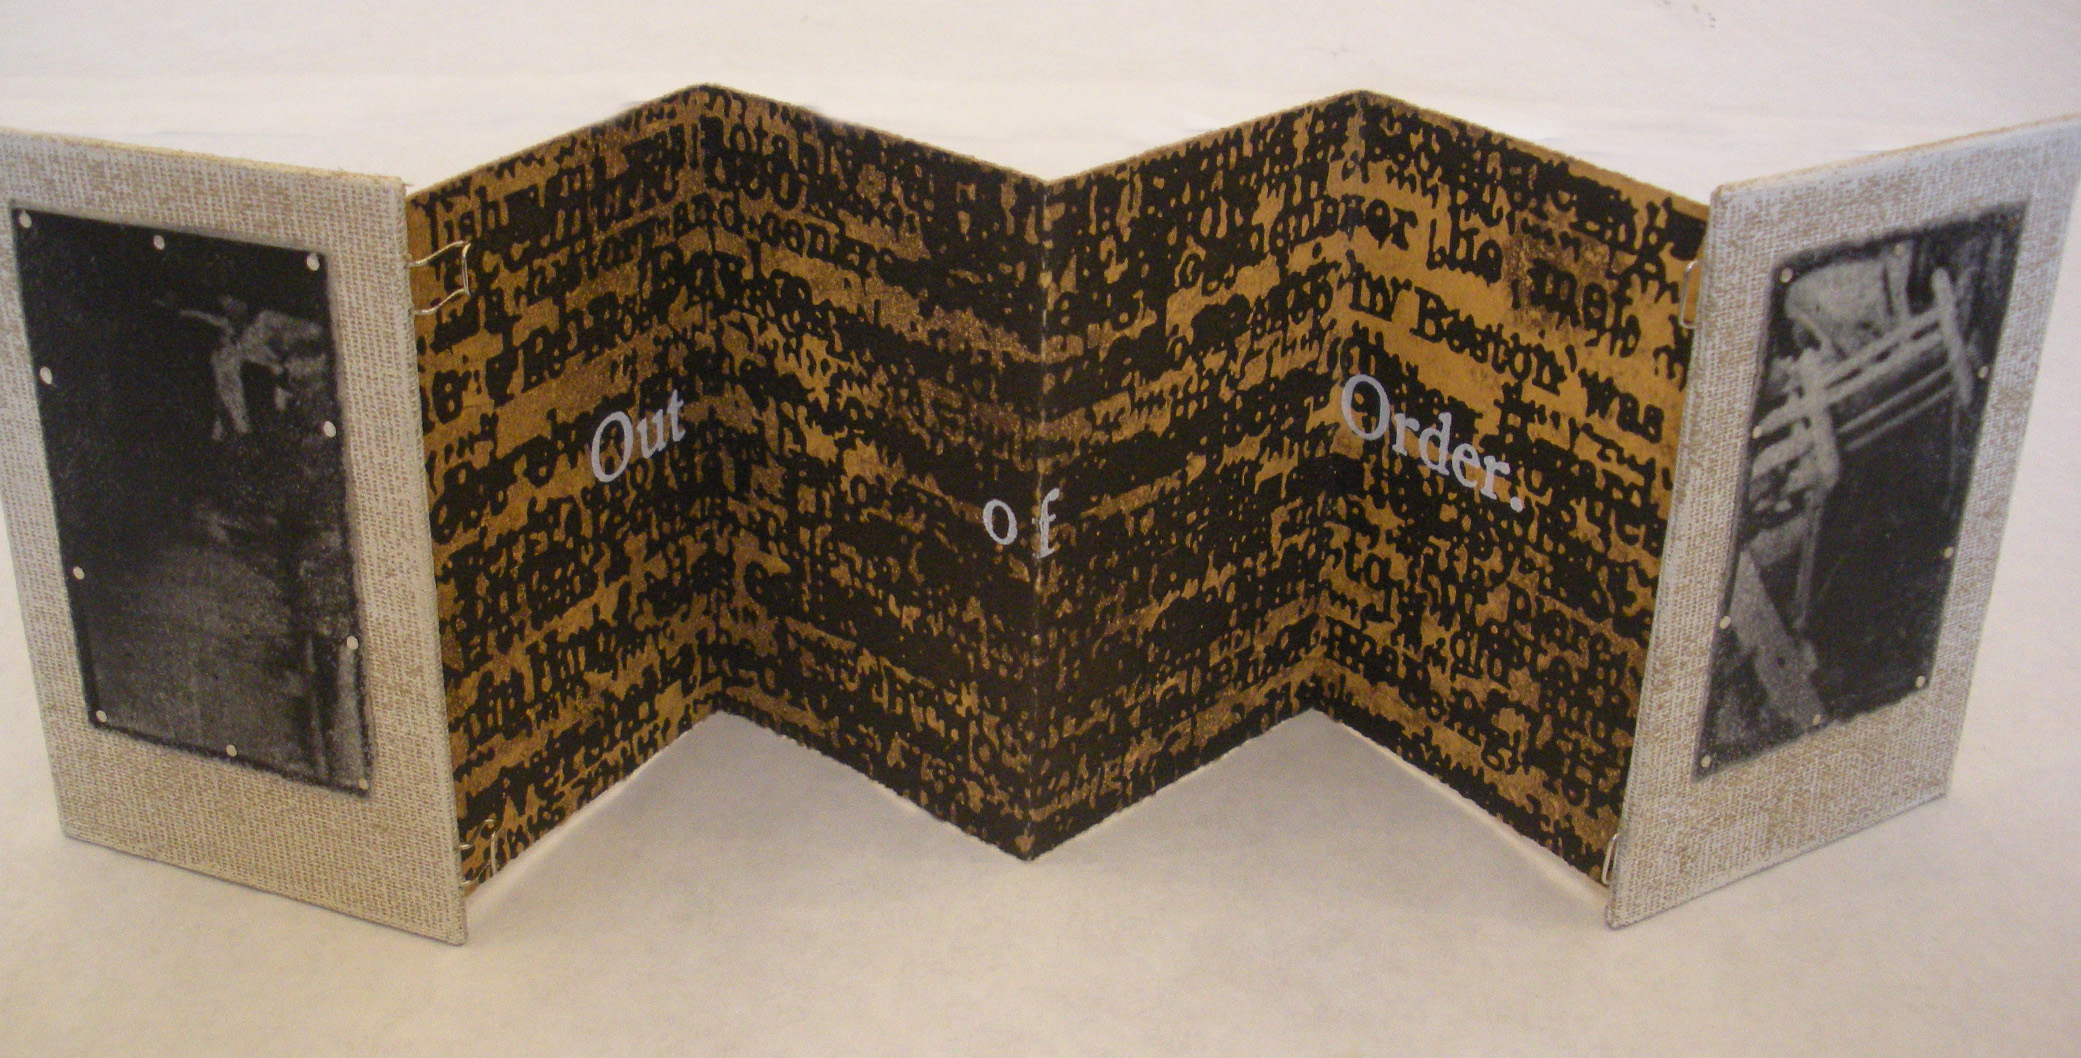 Book work created by Scott Cook, a Master of Fine Arts student in the UNL Department of Art and Art History.